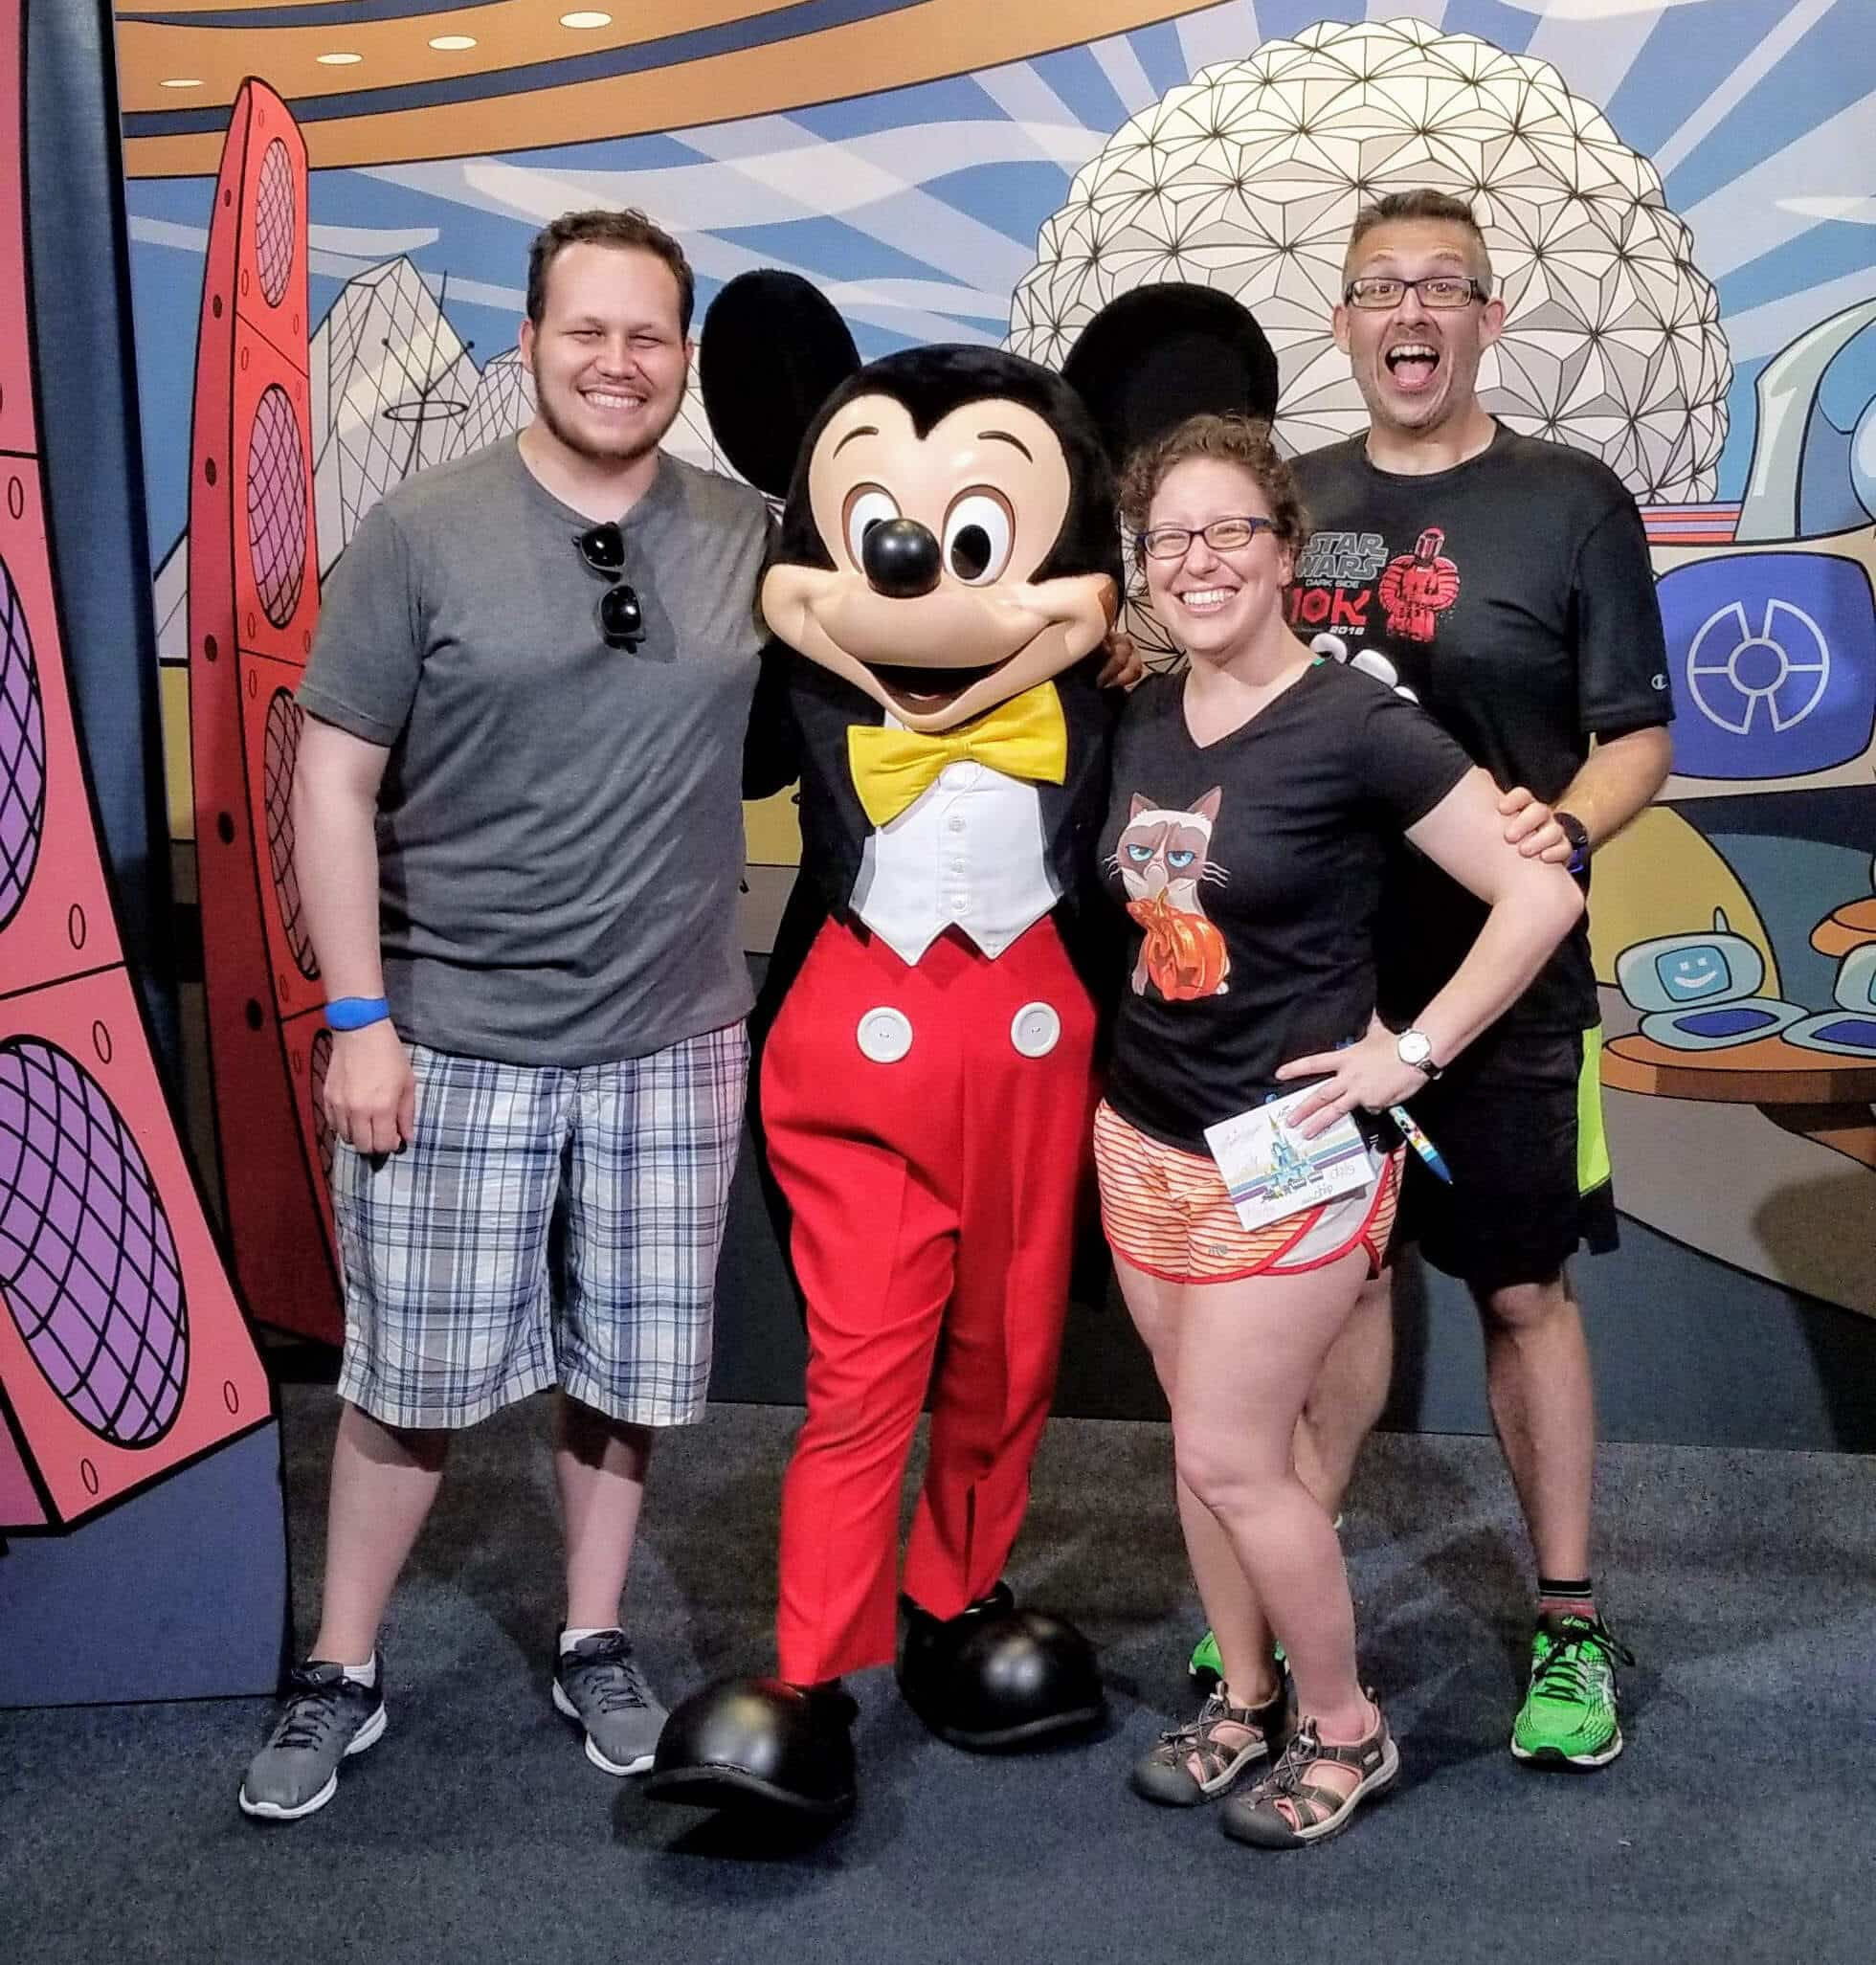 meeting mickey mouse at disney was like meeting a celebrity. It was weird and awesome and I didn't expect that.